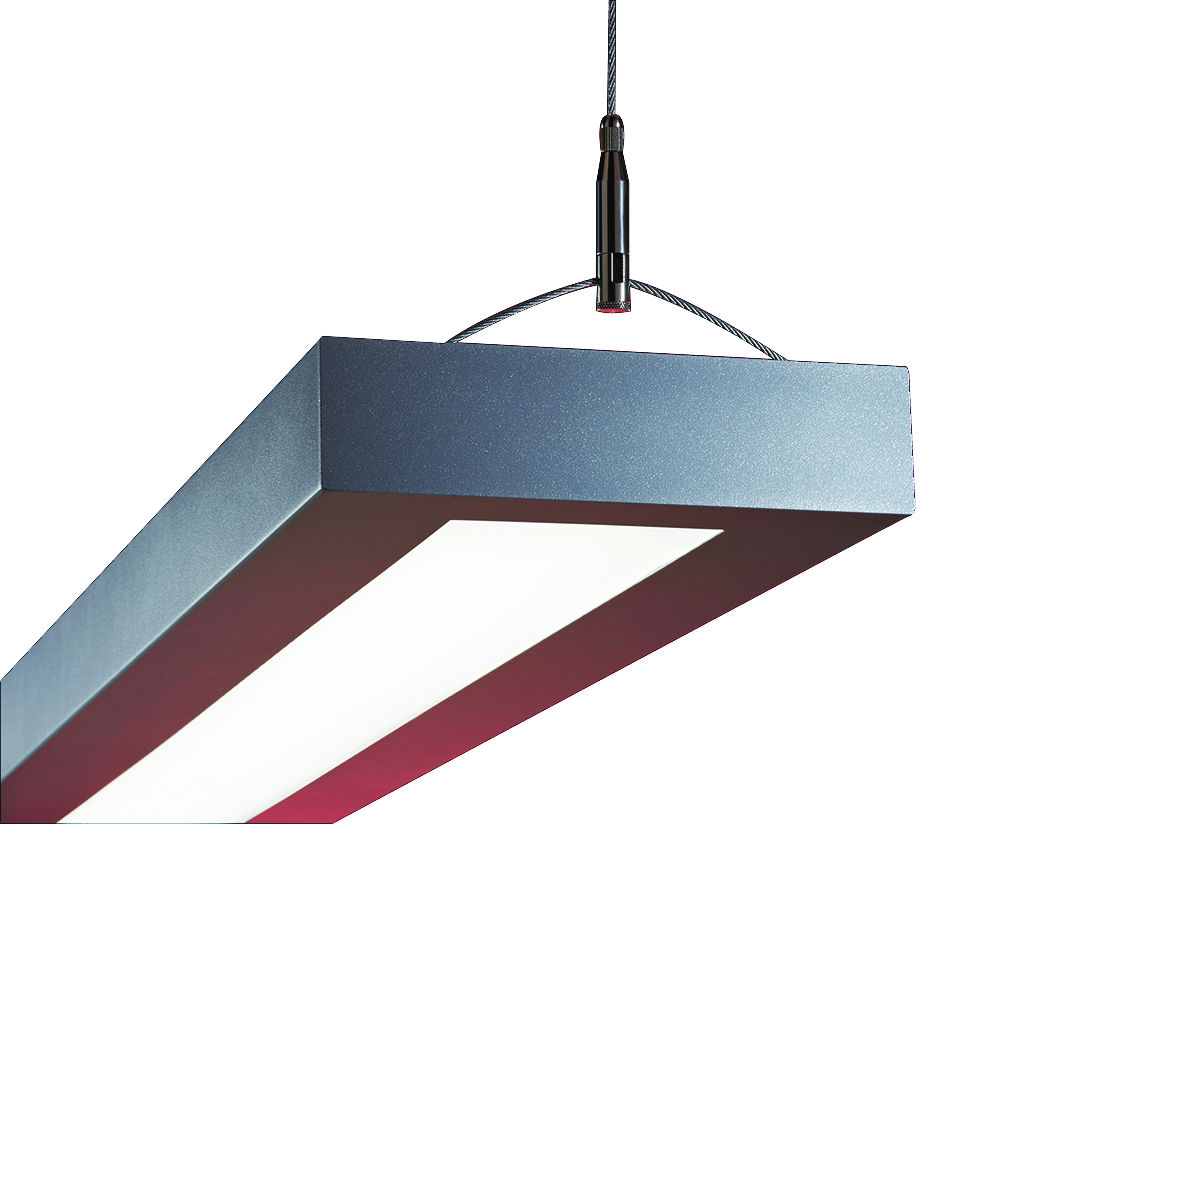 Sector pendant indirectdirect pendant lighting commercial sector pendant indirectdirect aloadofball Image collections